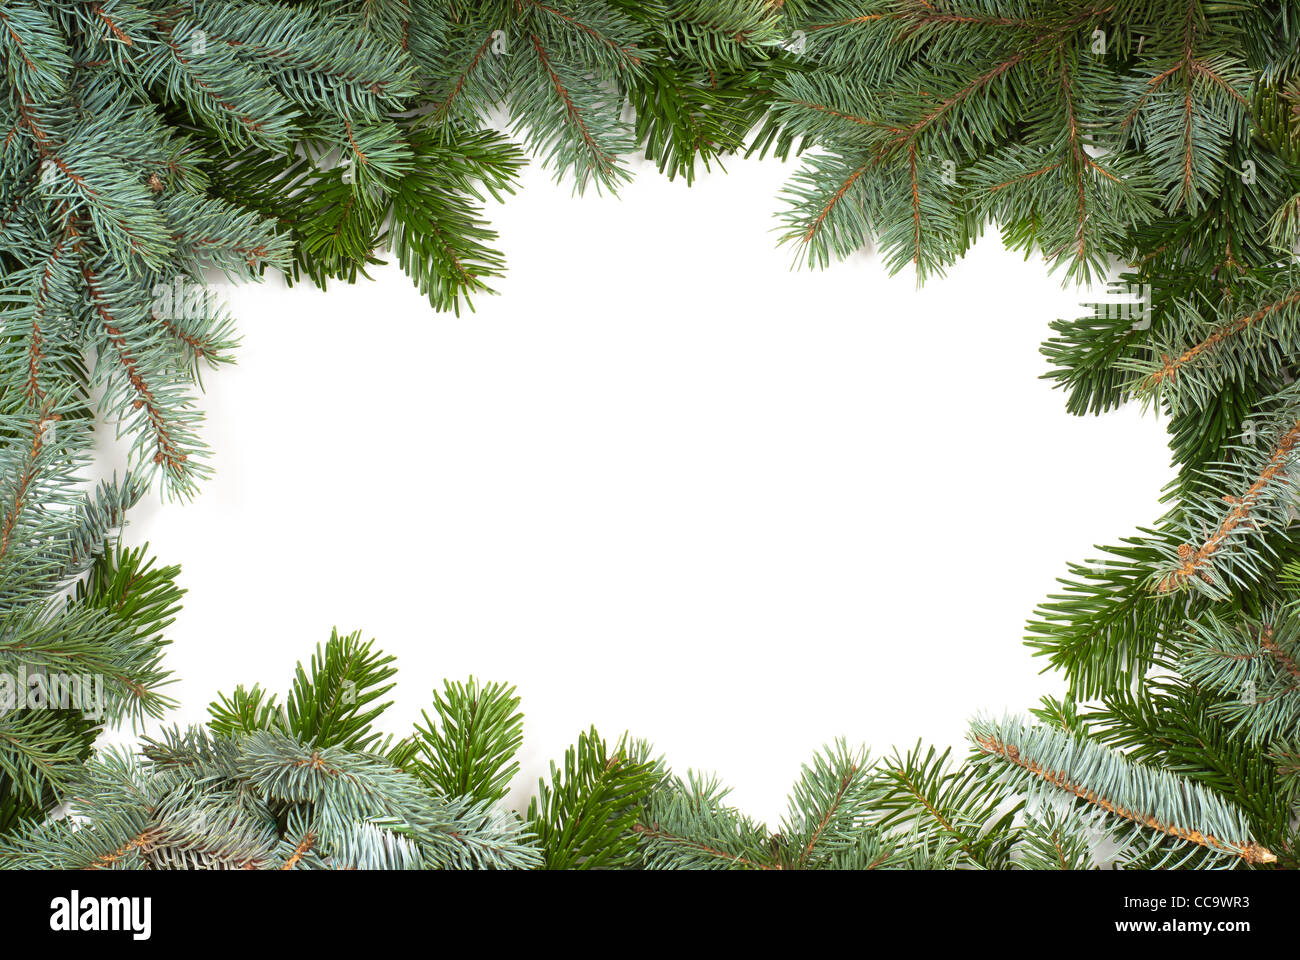 fir twig frame on white background - Stock Image